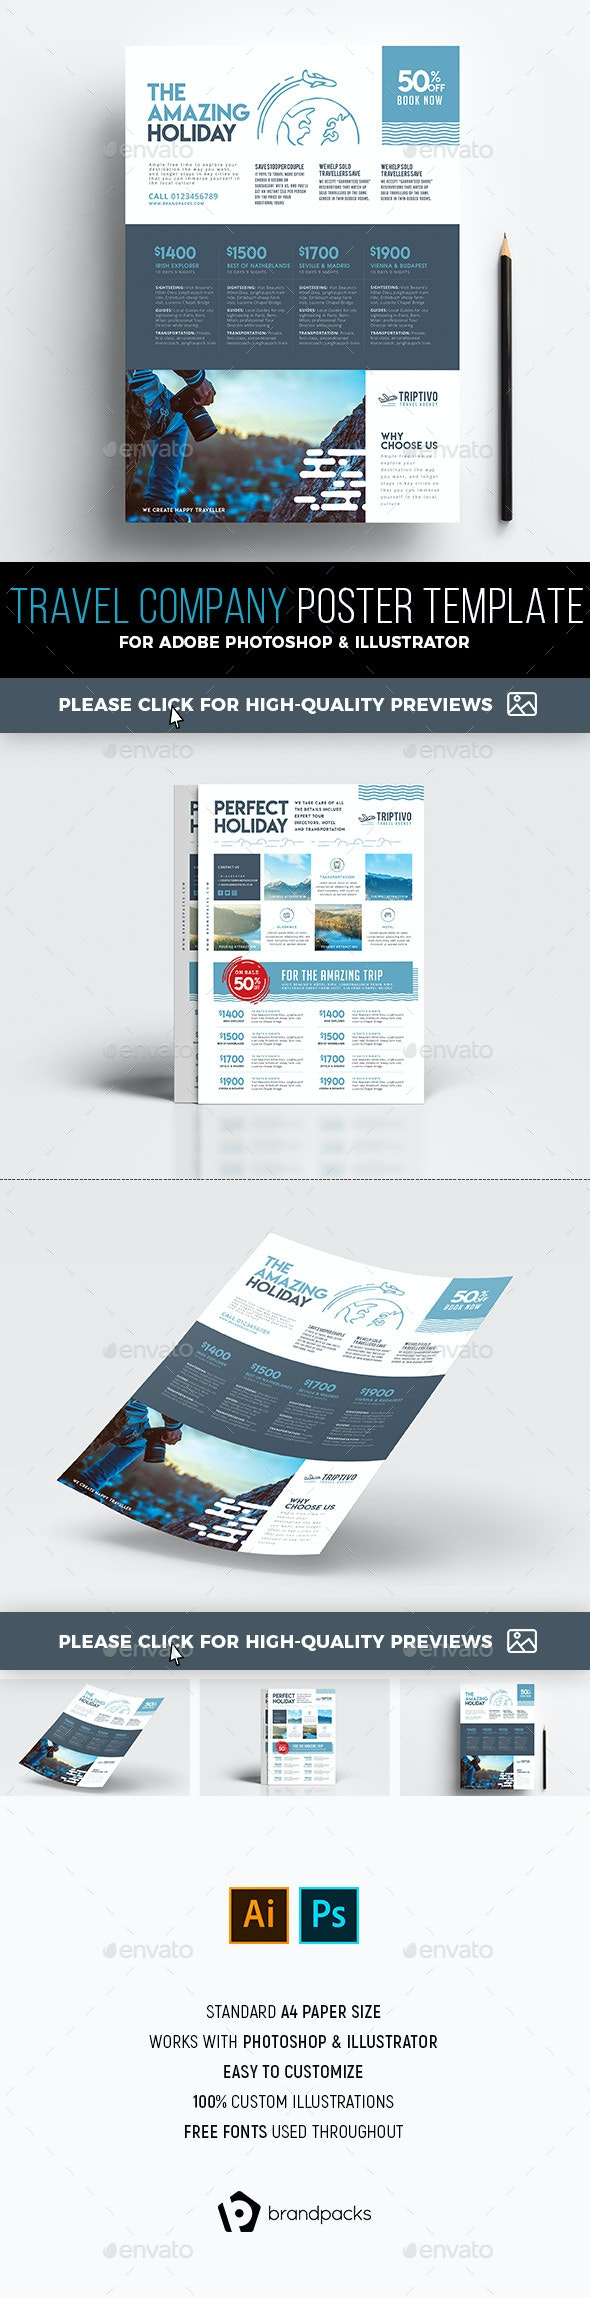 A4 Travel Company Poster/Advertisement Template - Corporate Flyers